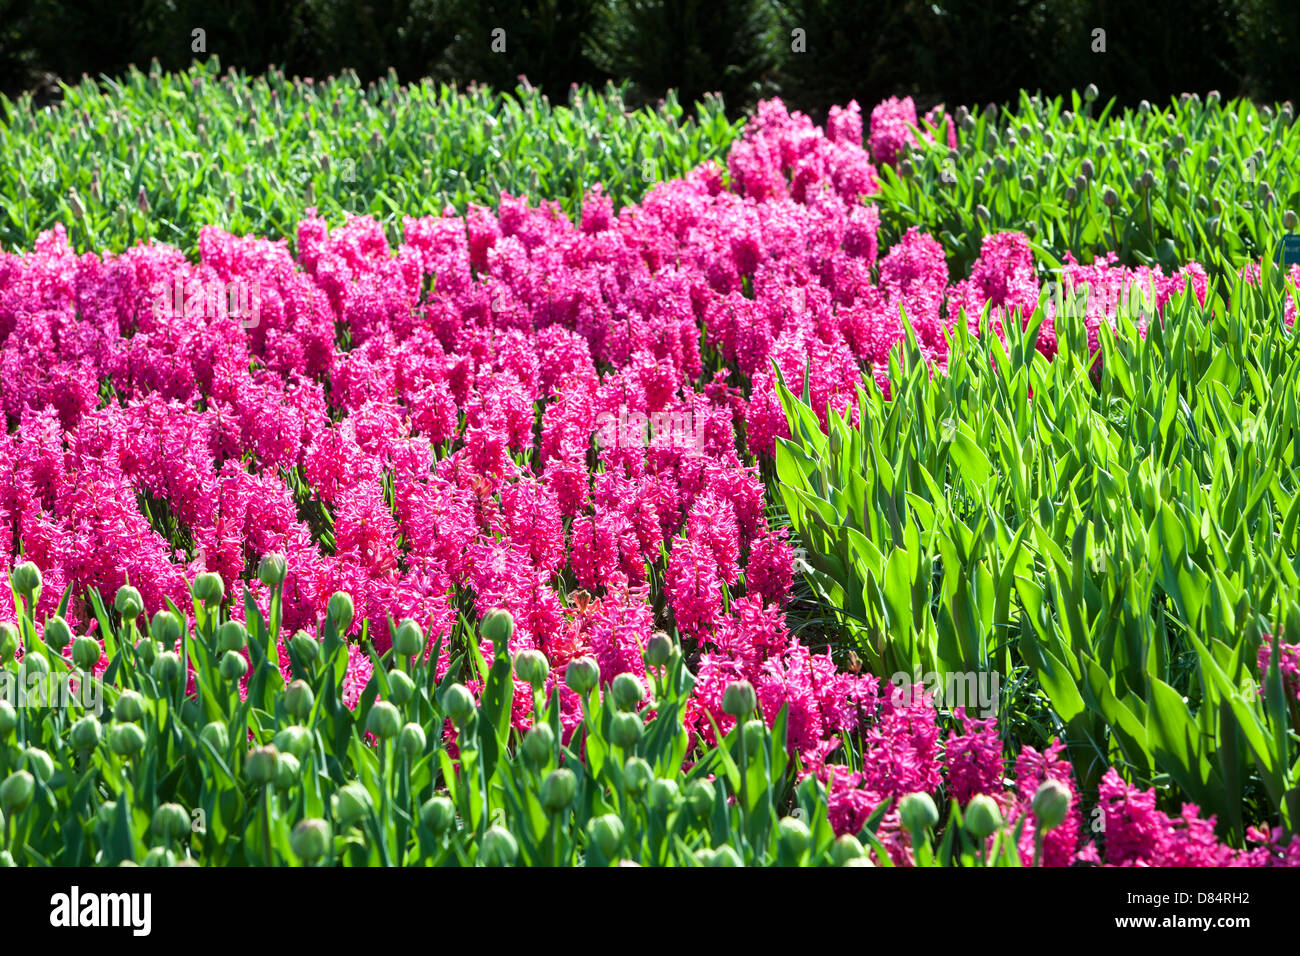 A Hyacinth display at Keukenhof gardens, the most famous Spring garden in the world, Lisse, Netherlands. - Stock Image